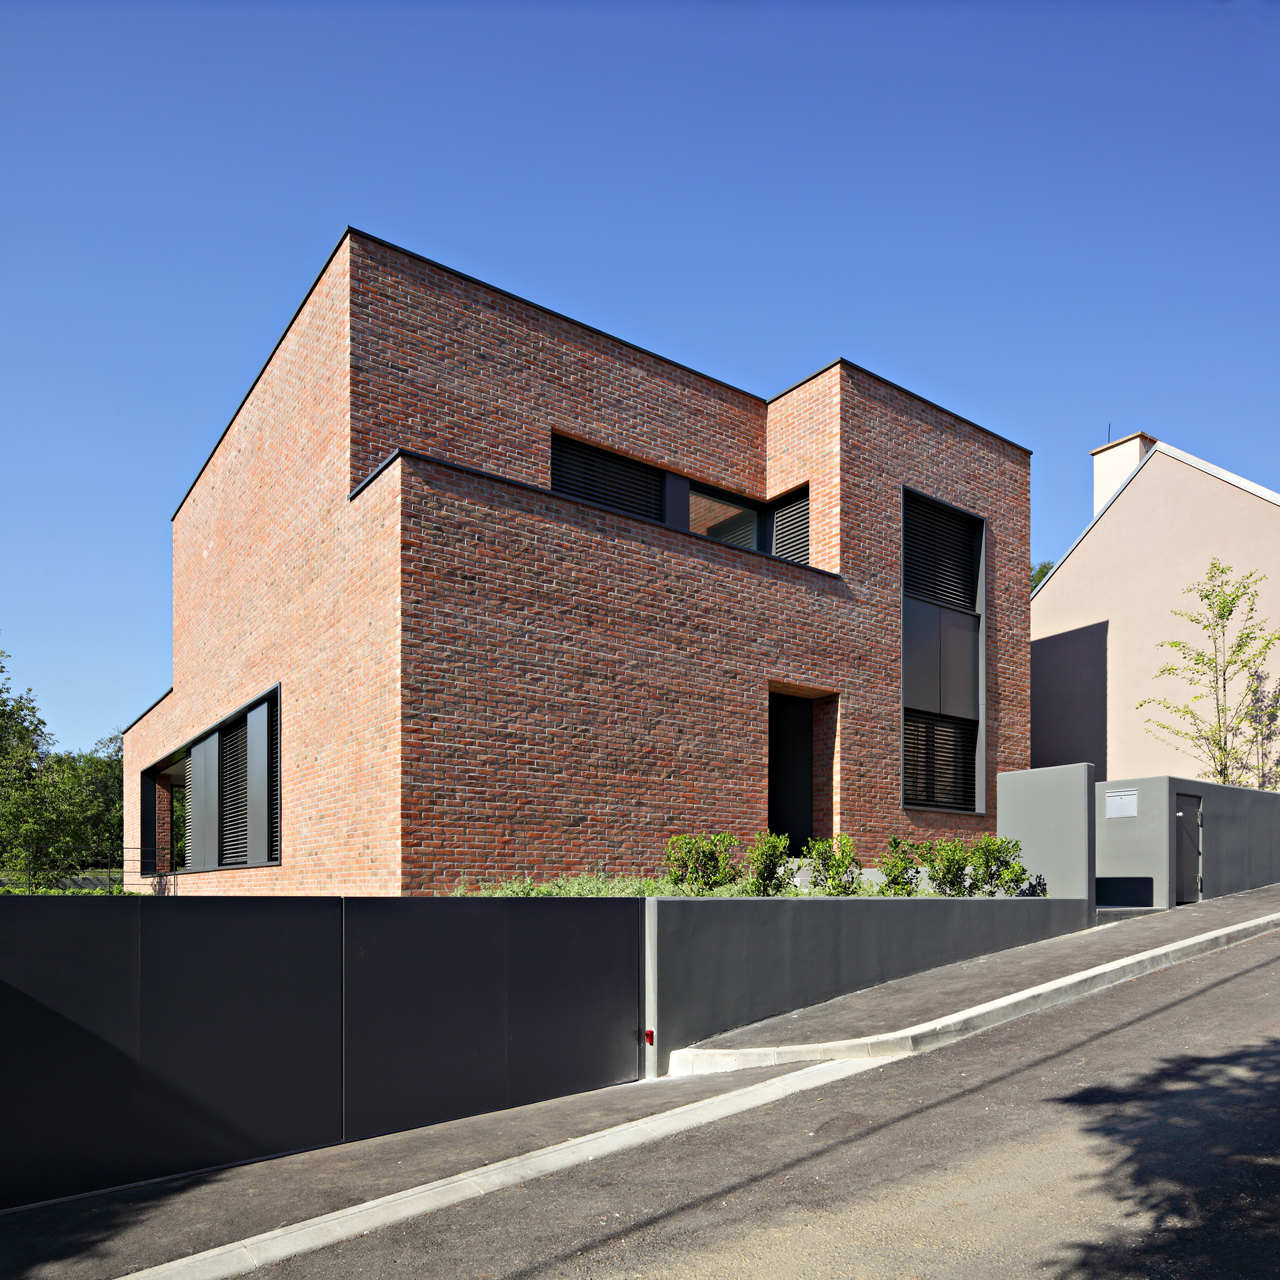 Built by dva arhitekta in zagreb croatia with date 2010 images by robert leš the house is designed for a young family who wanted to build a new home in